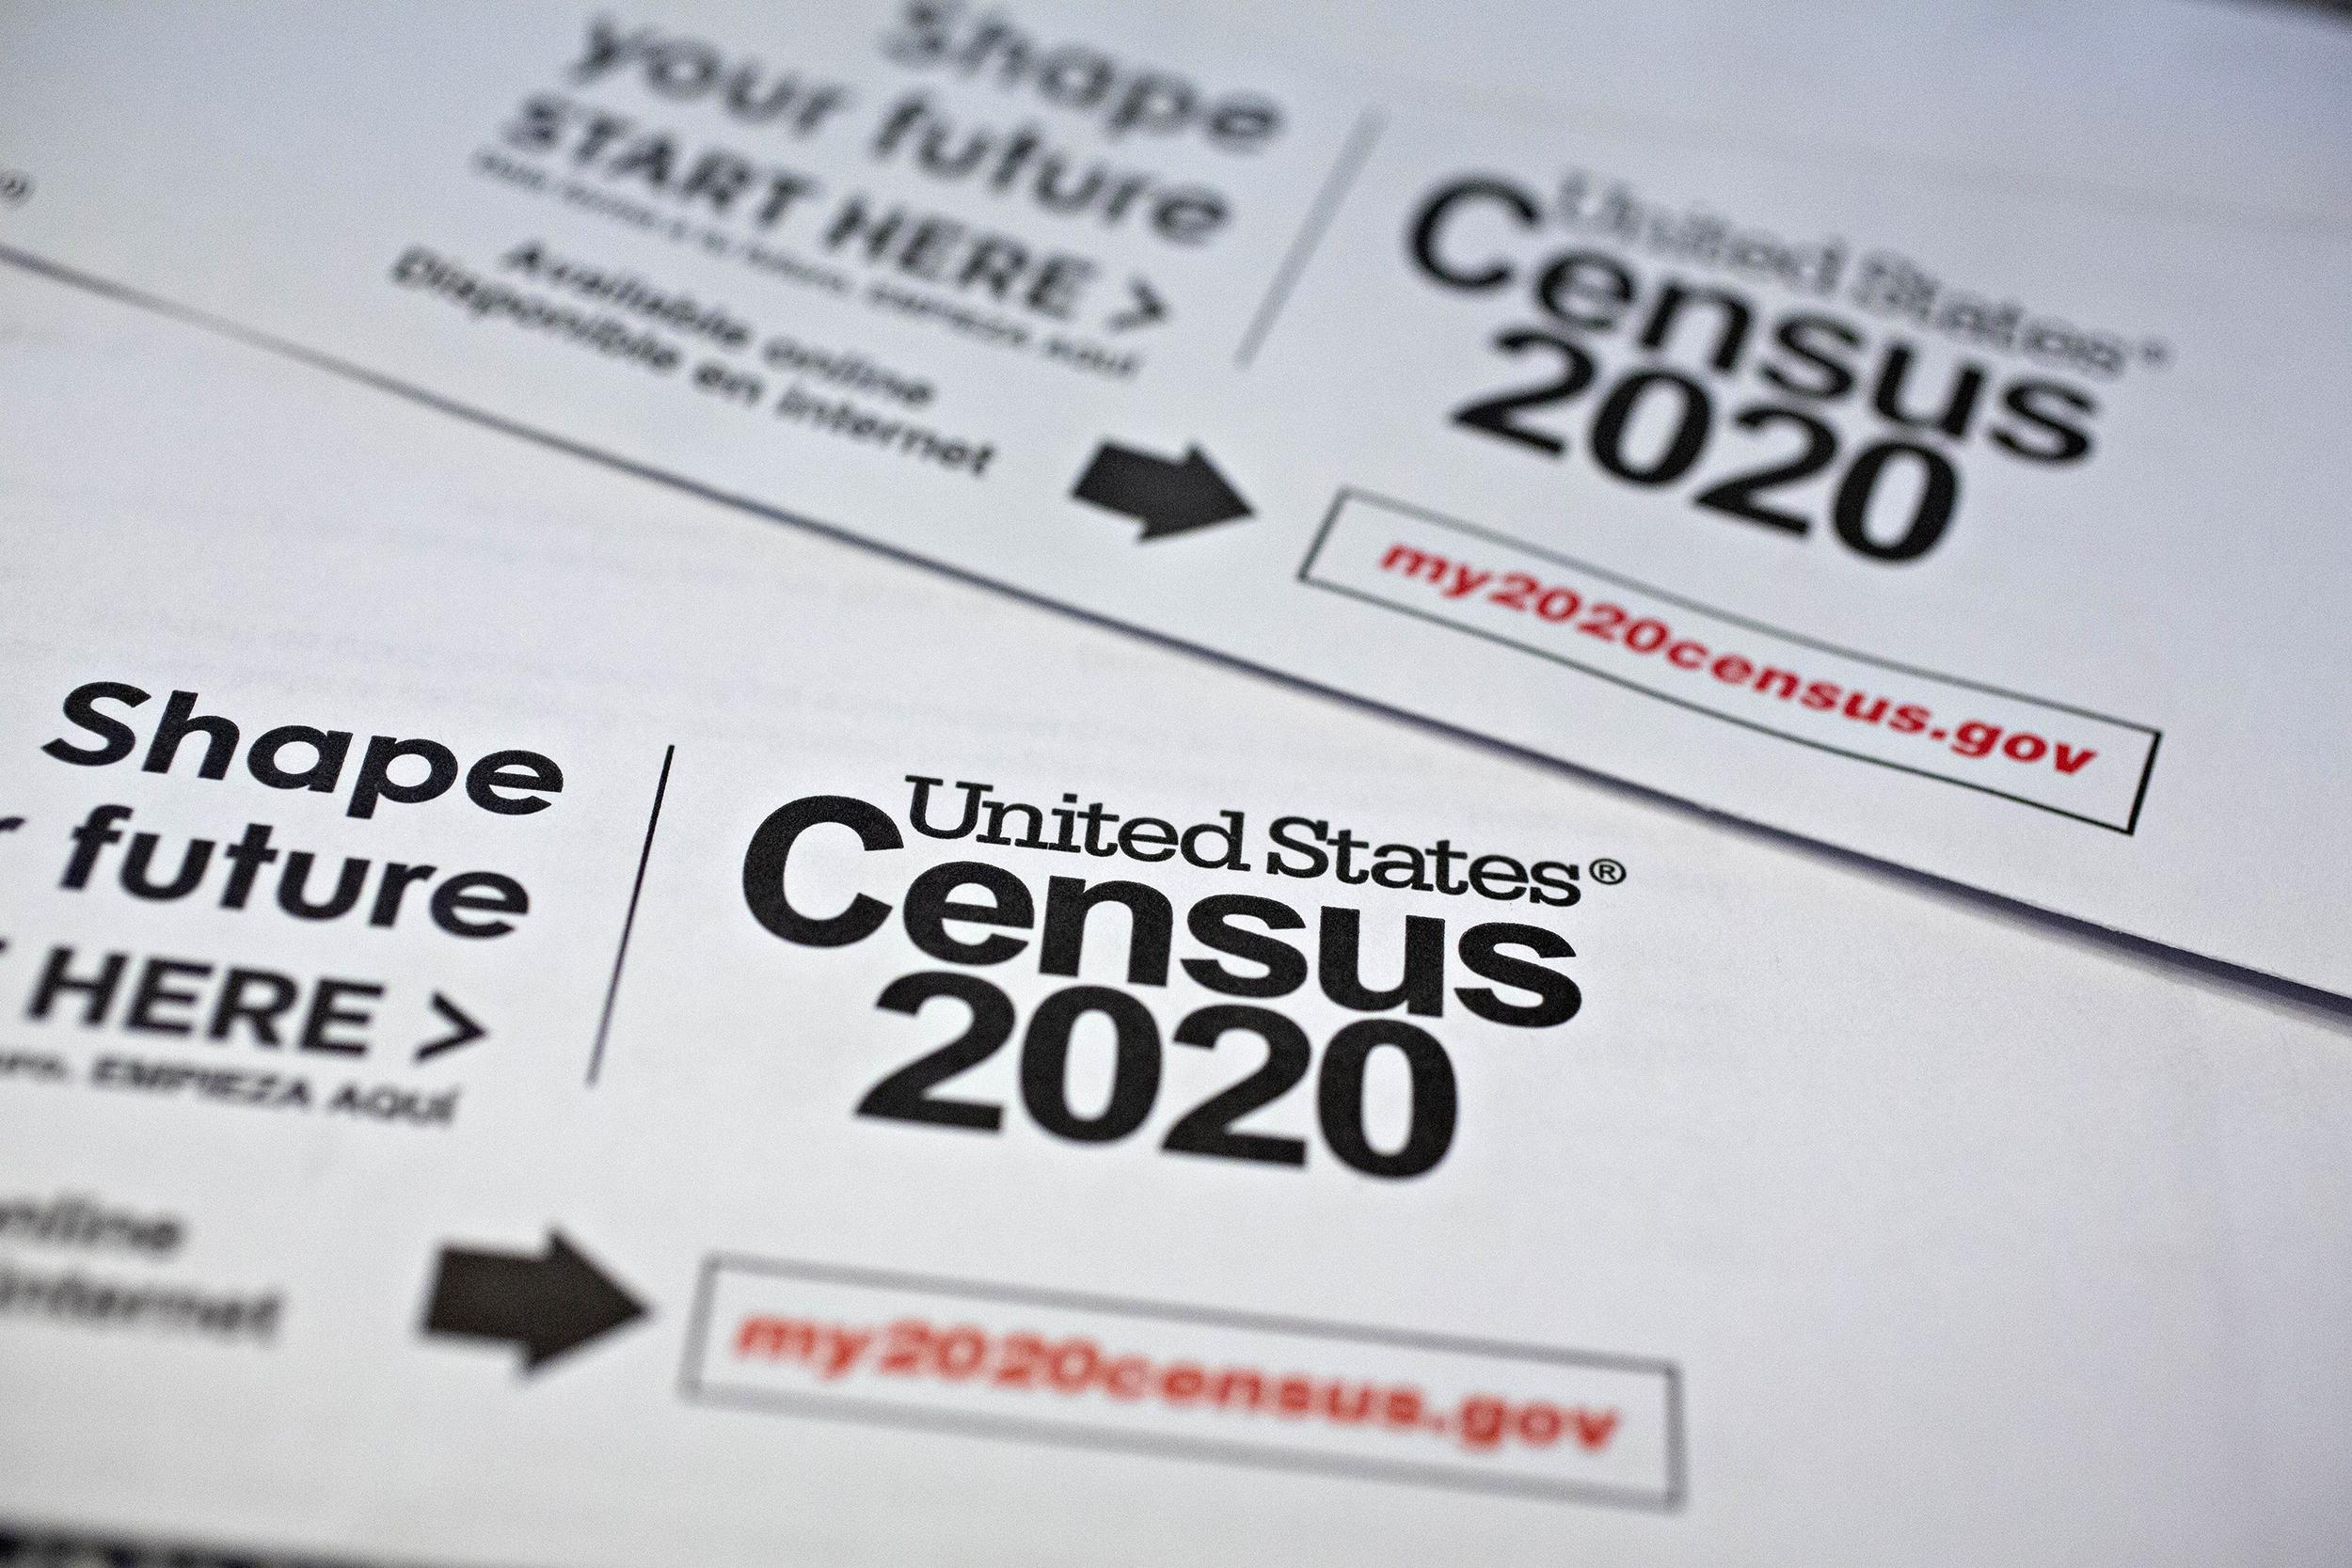 President Trump Requests a Delay of the Census Amid Pandemic